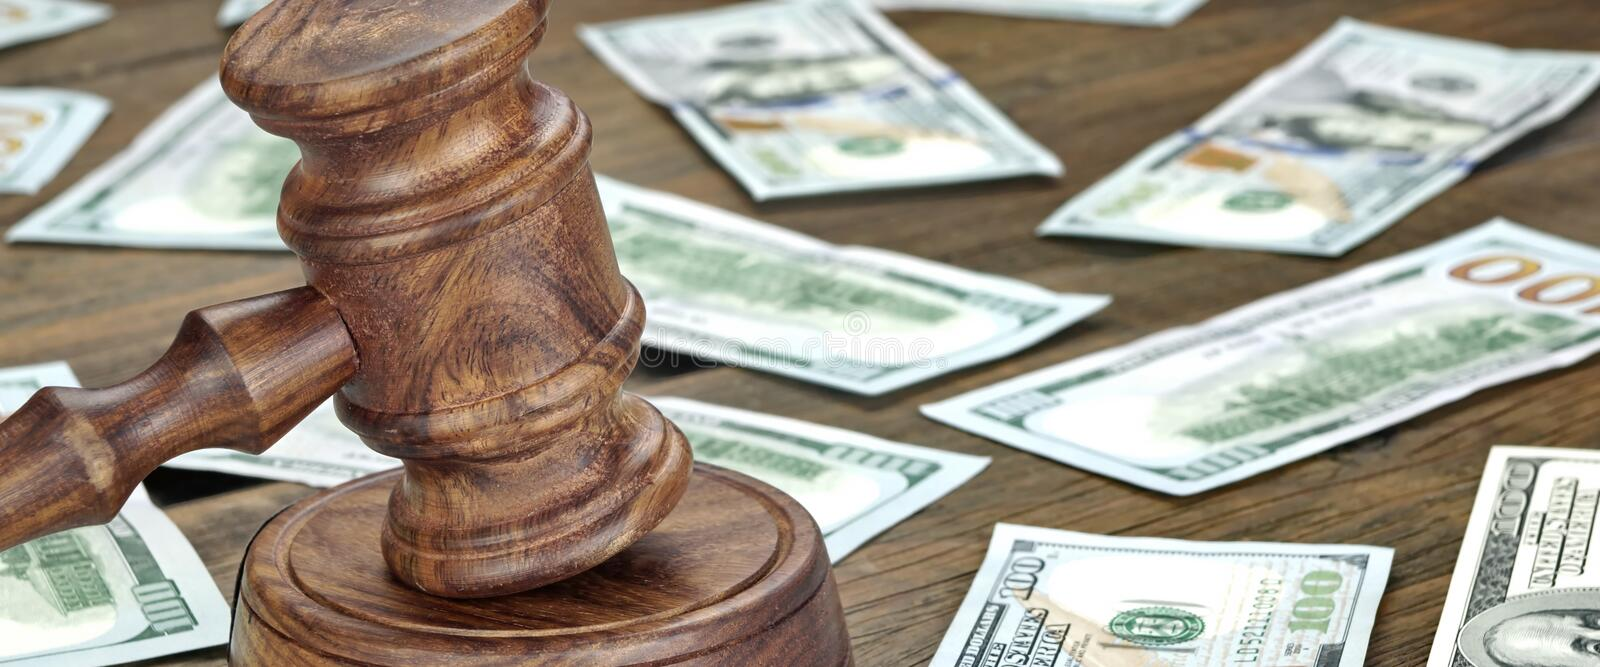 Financial Crime or Auction Concept With Gavel And Money Background stock photo